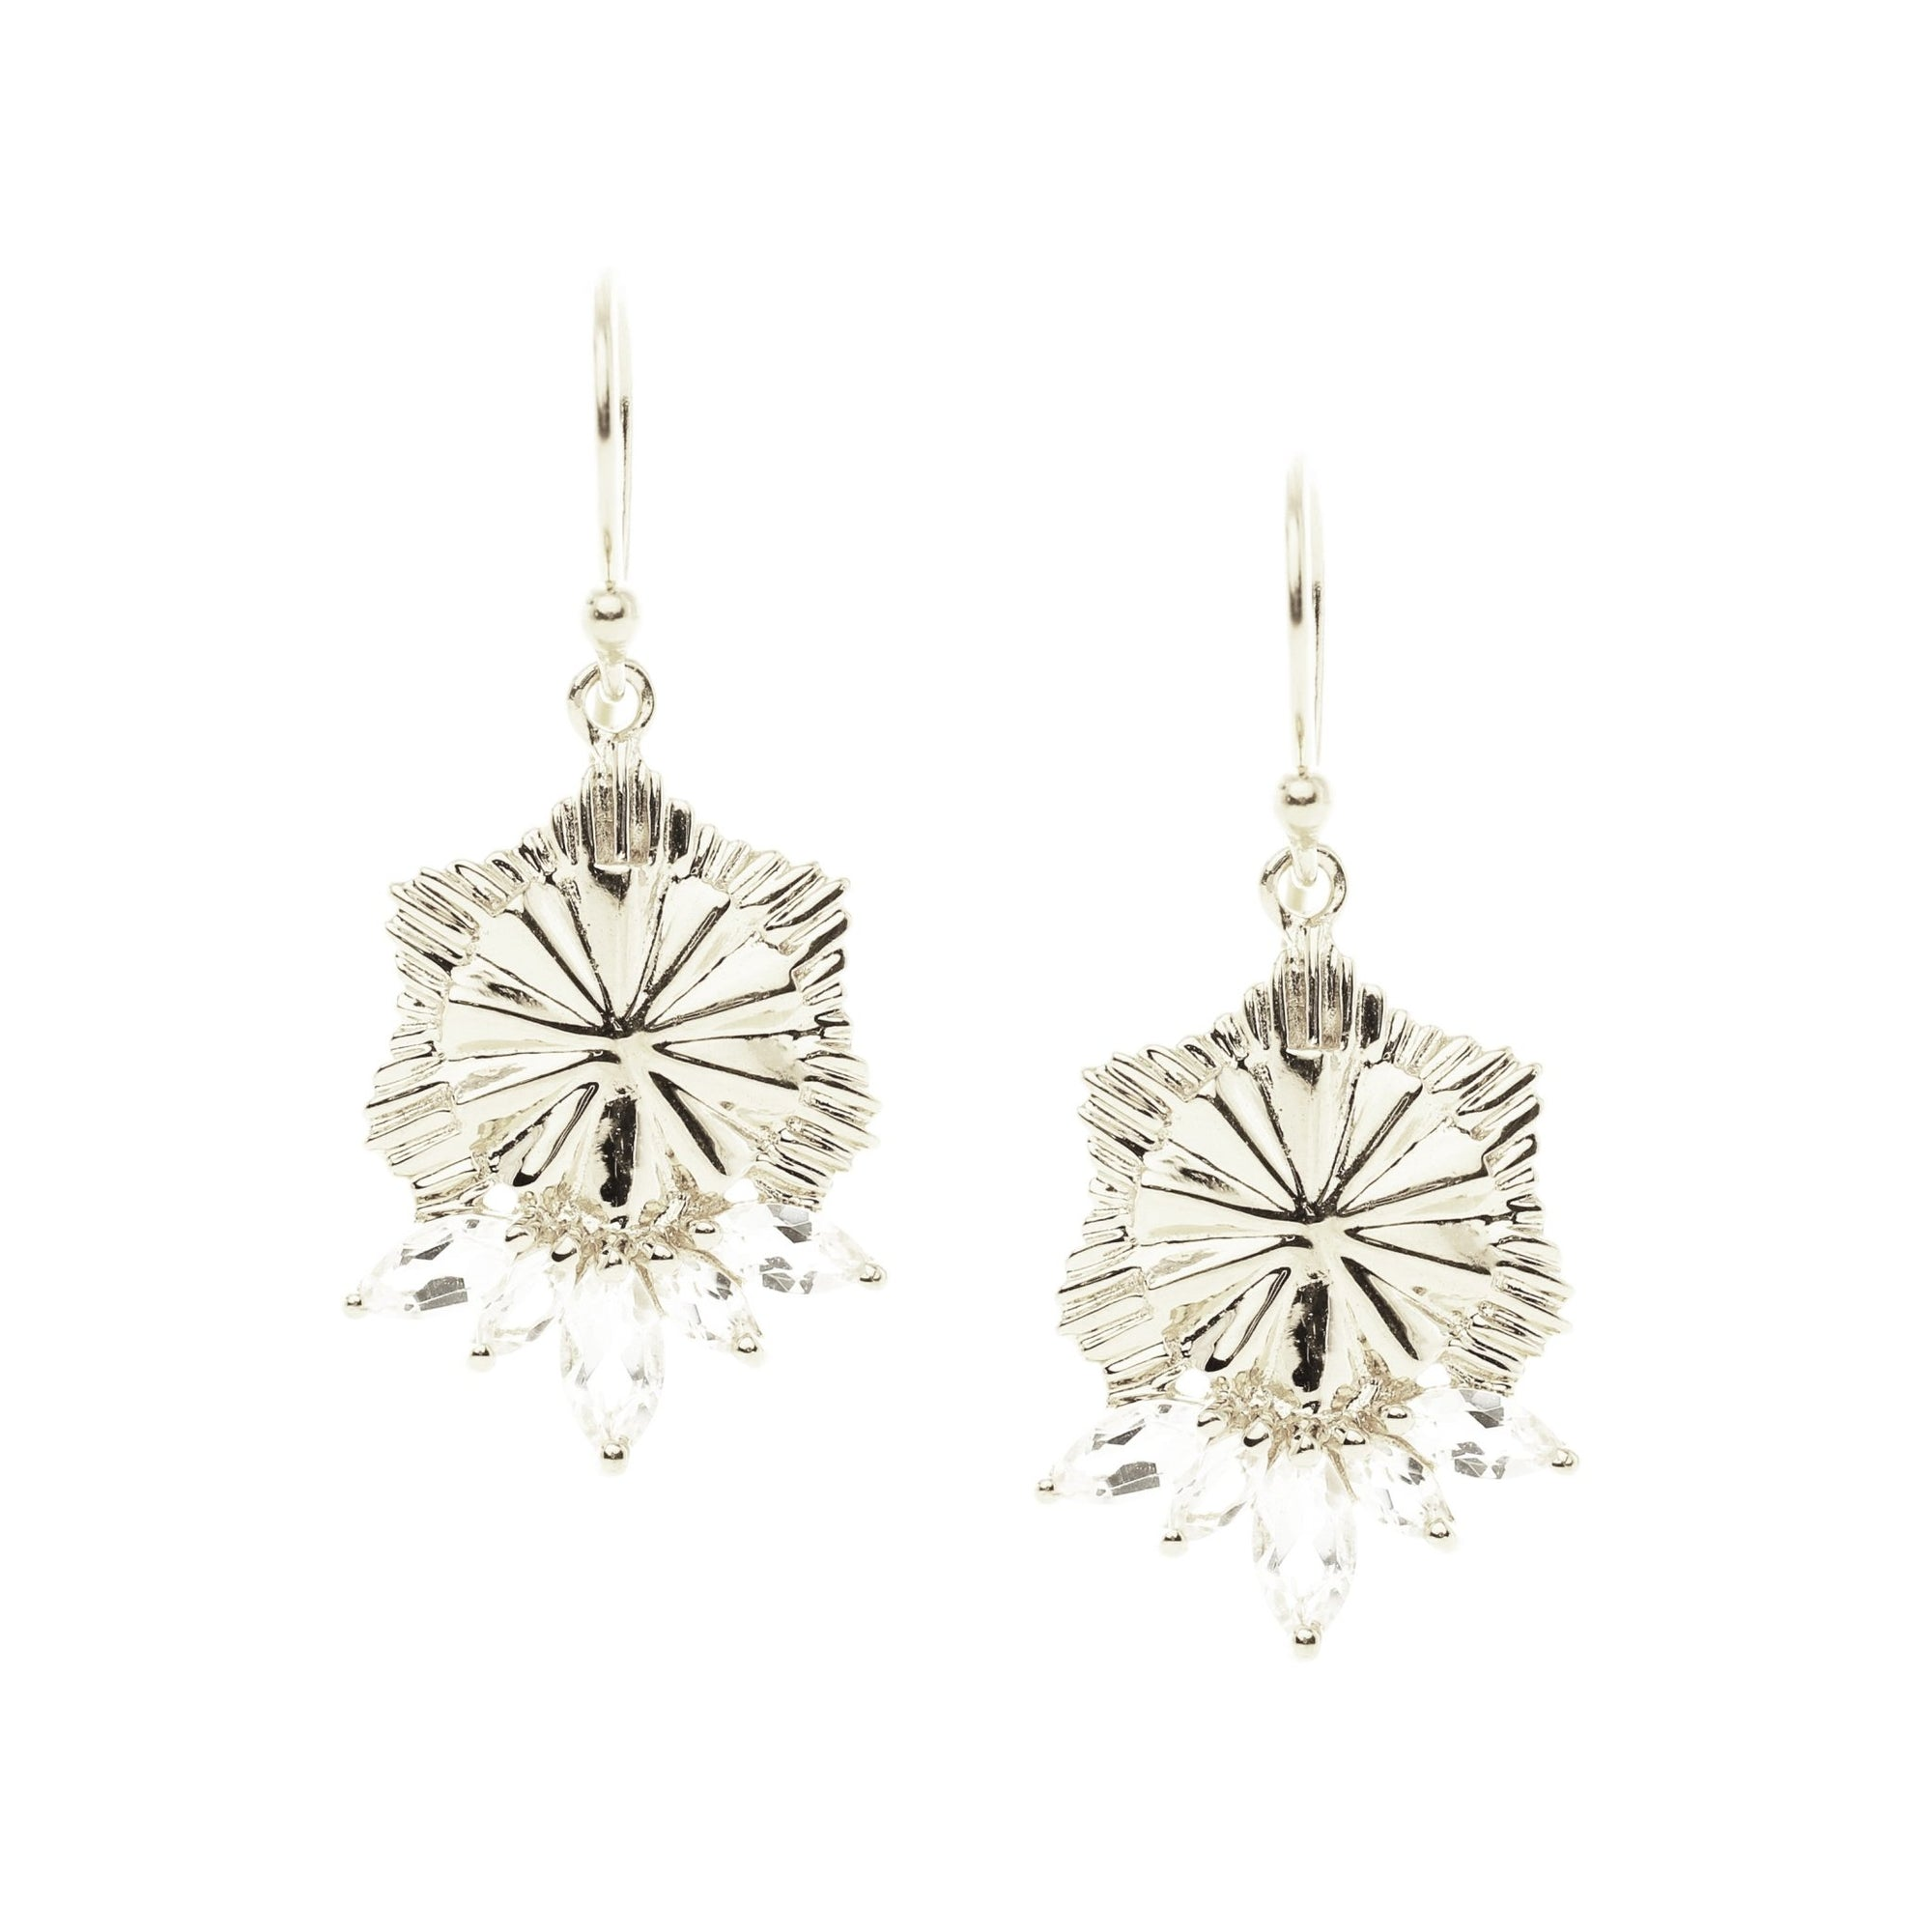 BELIEVE SOLEIL DROP EARRINGS - WHITE TOPAZ & SILVER - SO PRETTY CARA COTTER